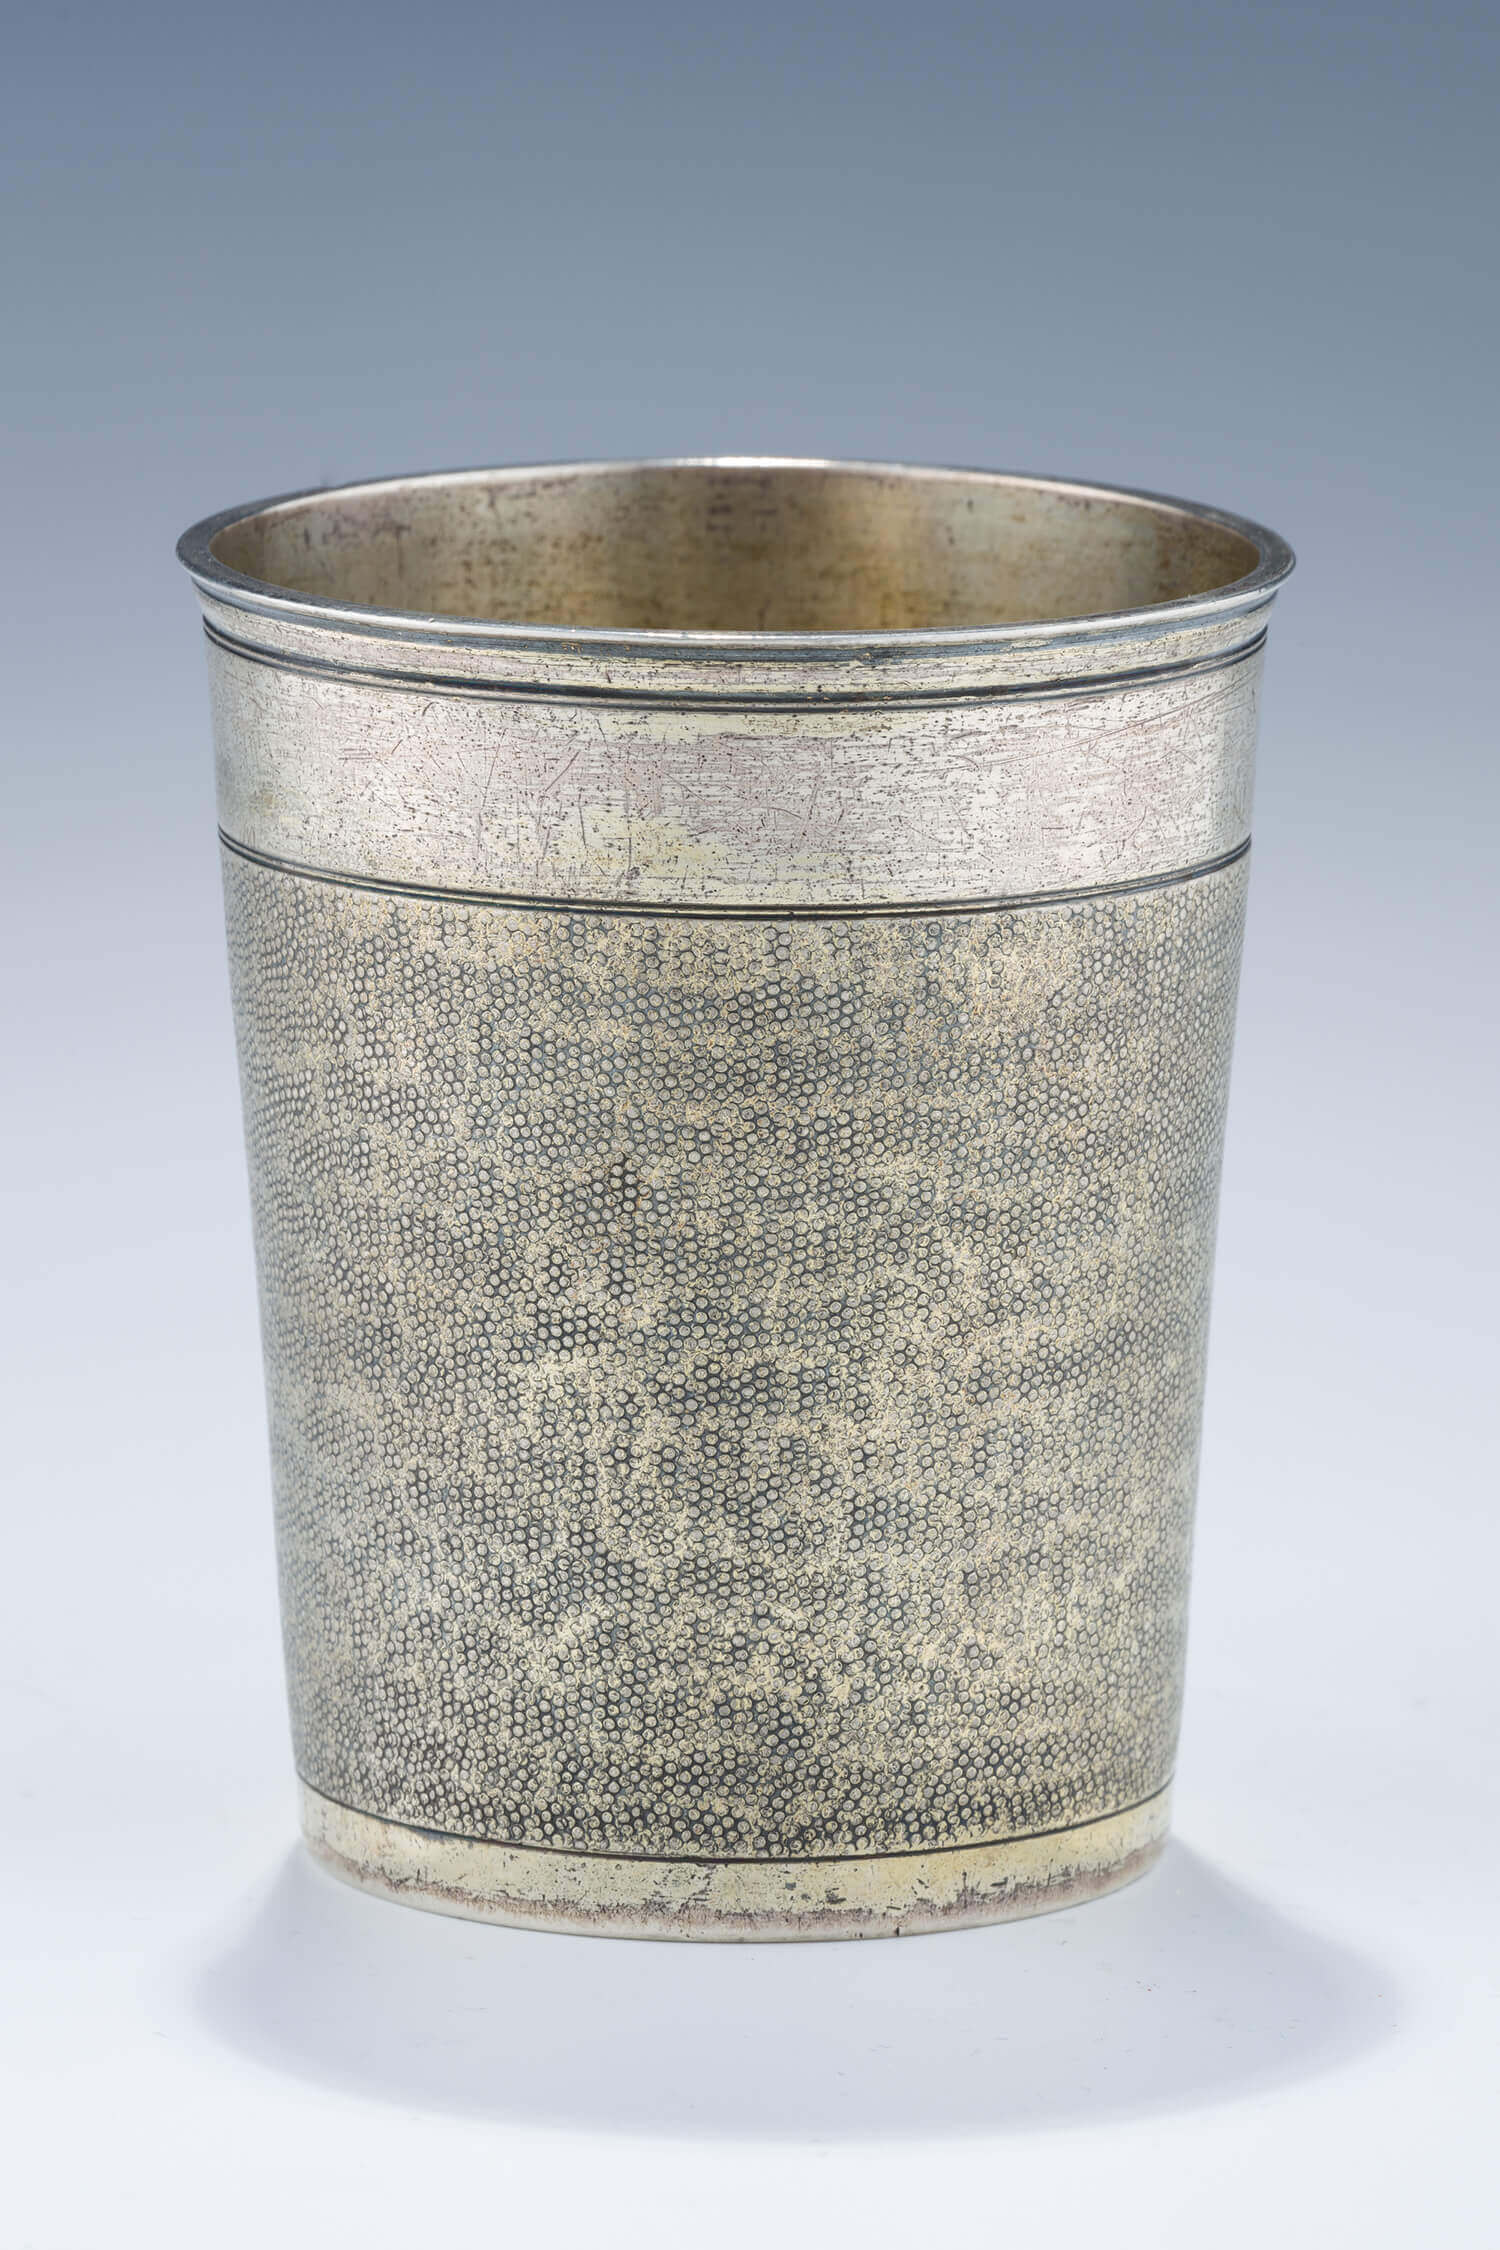 047. A LARGE SILVER BEAKER BY PAUL SOLANIER